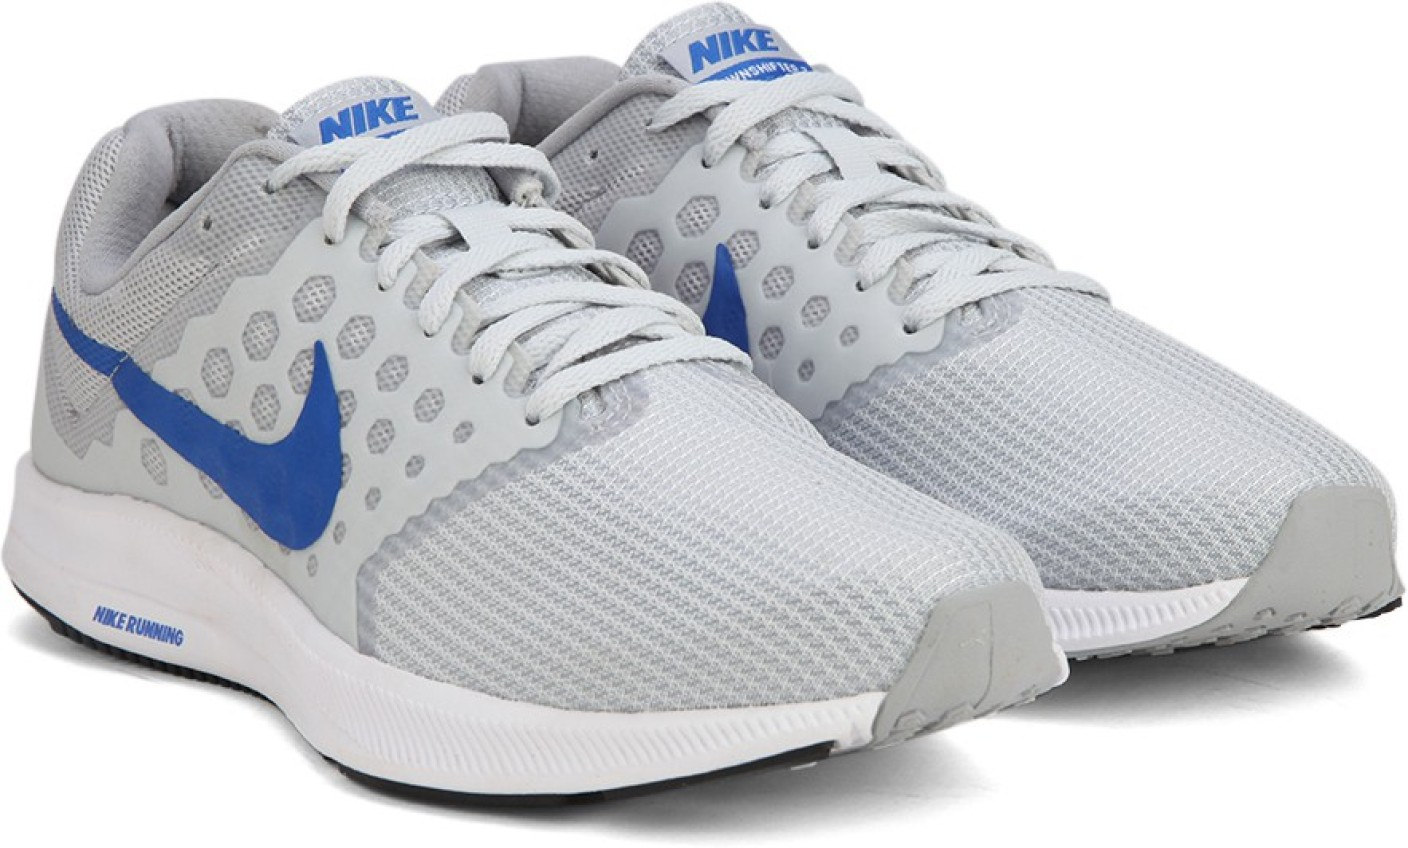 Nike DOWNSHIFTER 7 Running Shoes For Men. Share